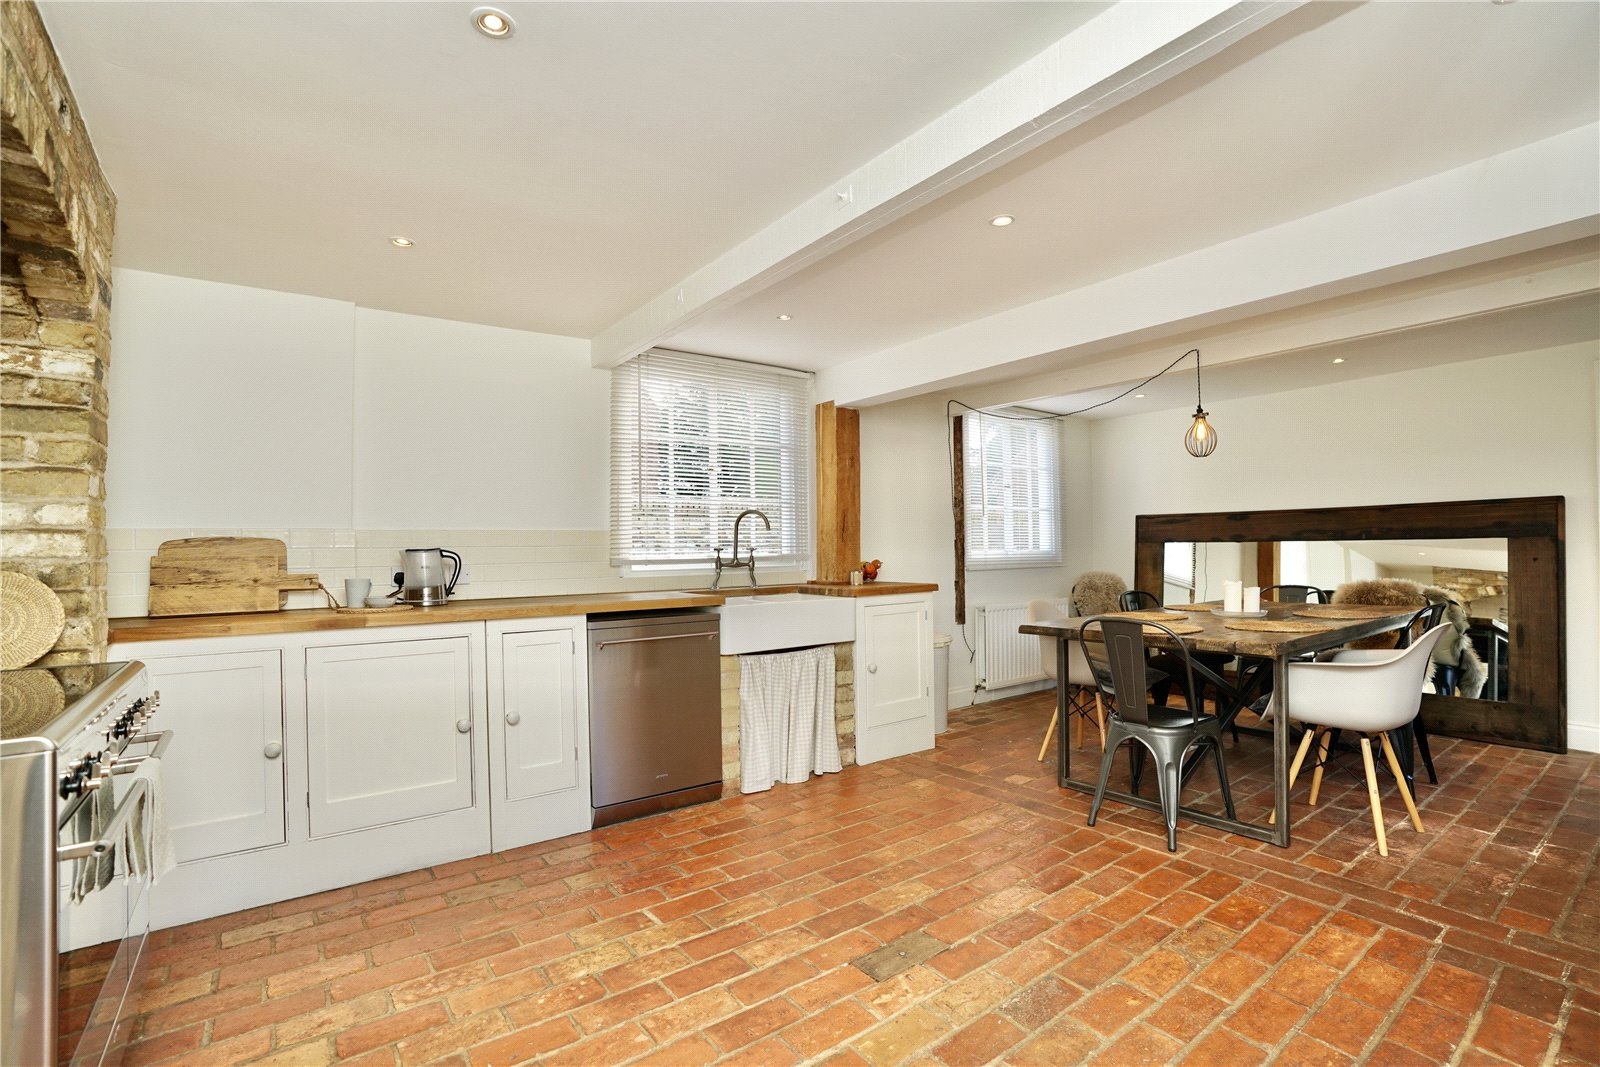 4 bed house for sale in Buckden 4